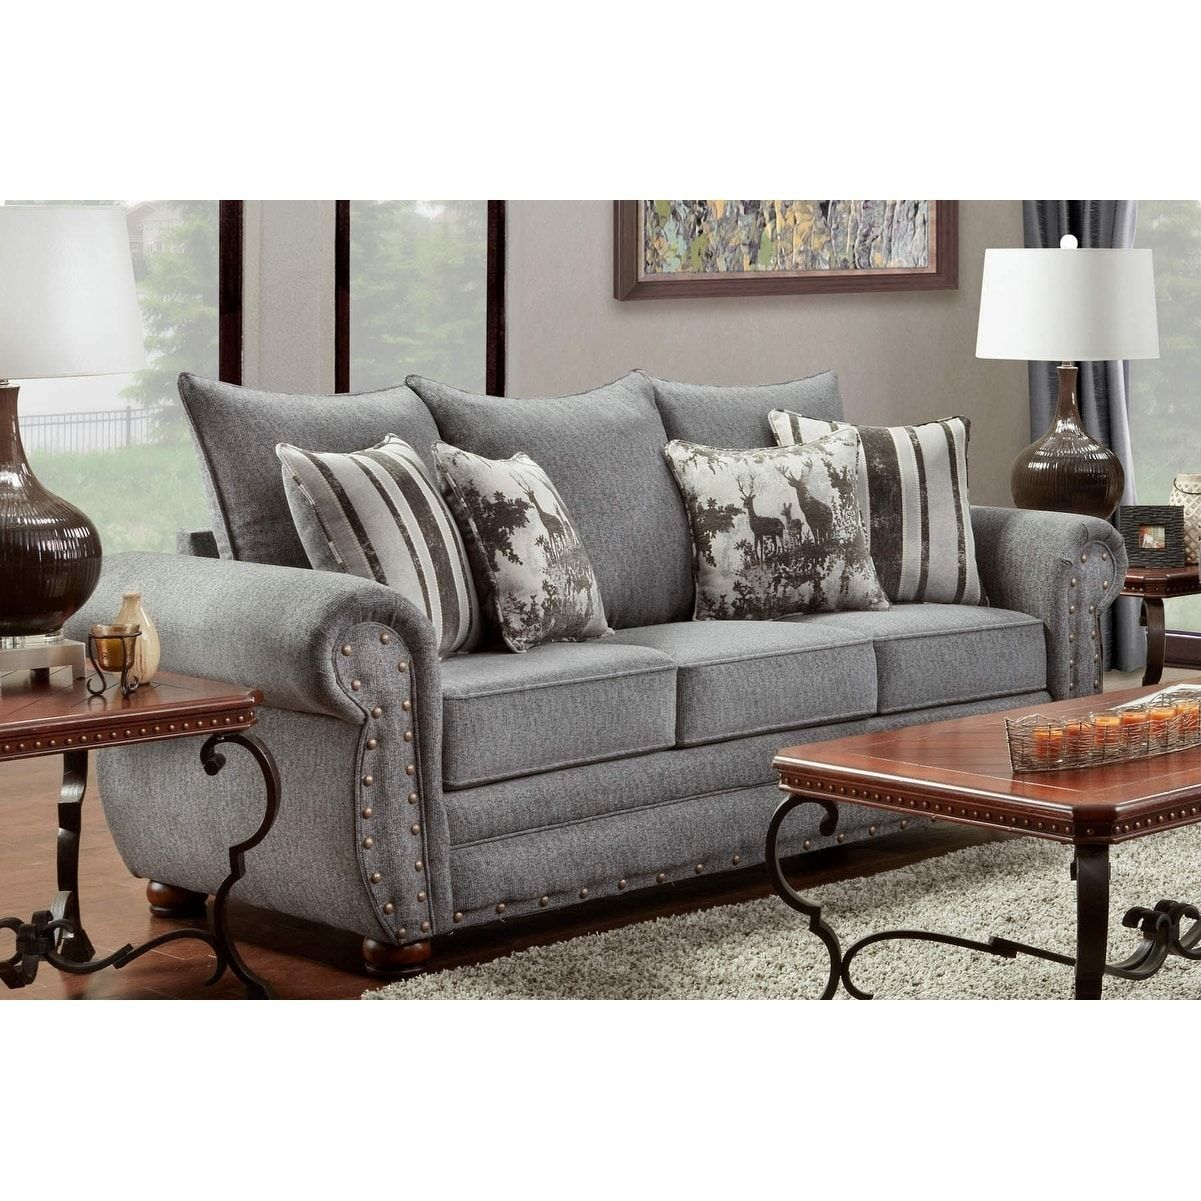 American Furniture Classics Model B3103 Erss Elk River Storm Sofa